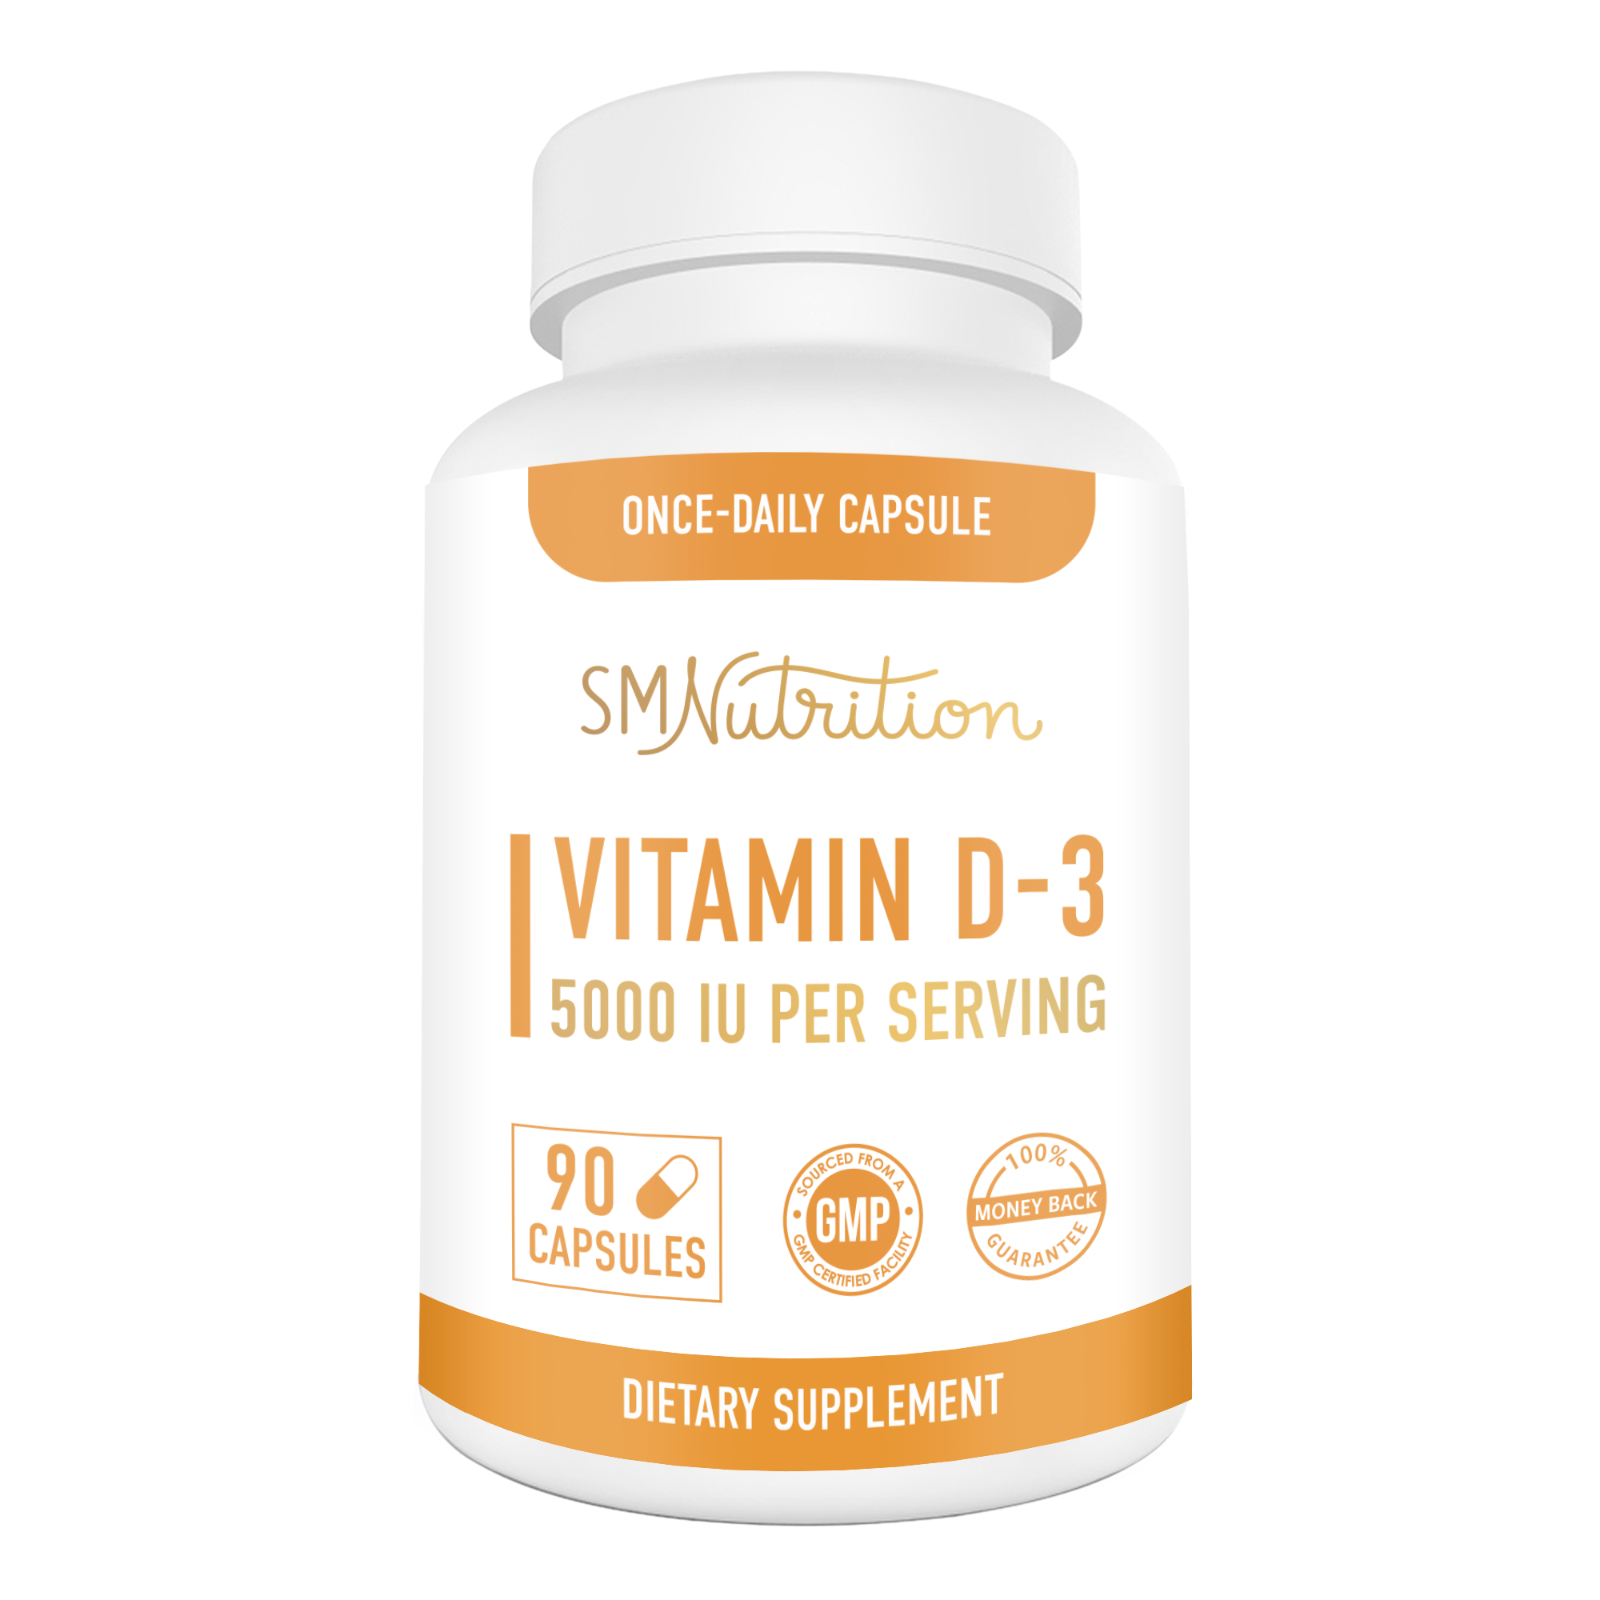 Vitamin D3 125mcg (5000 IU) Supplement for Adults (90 Capsules)